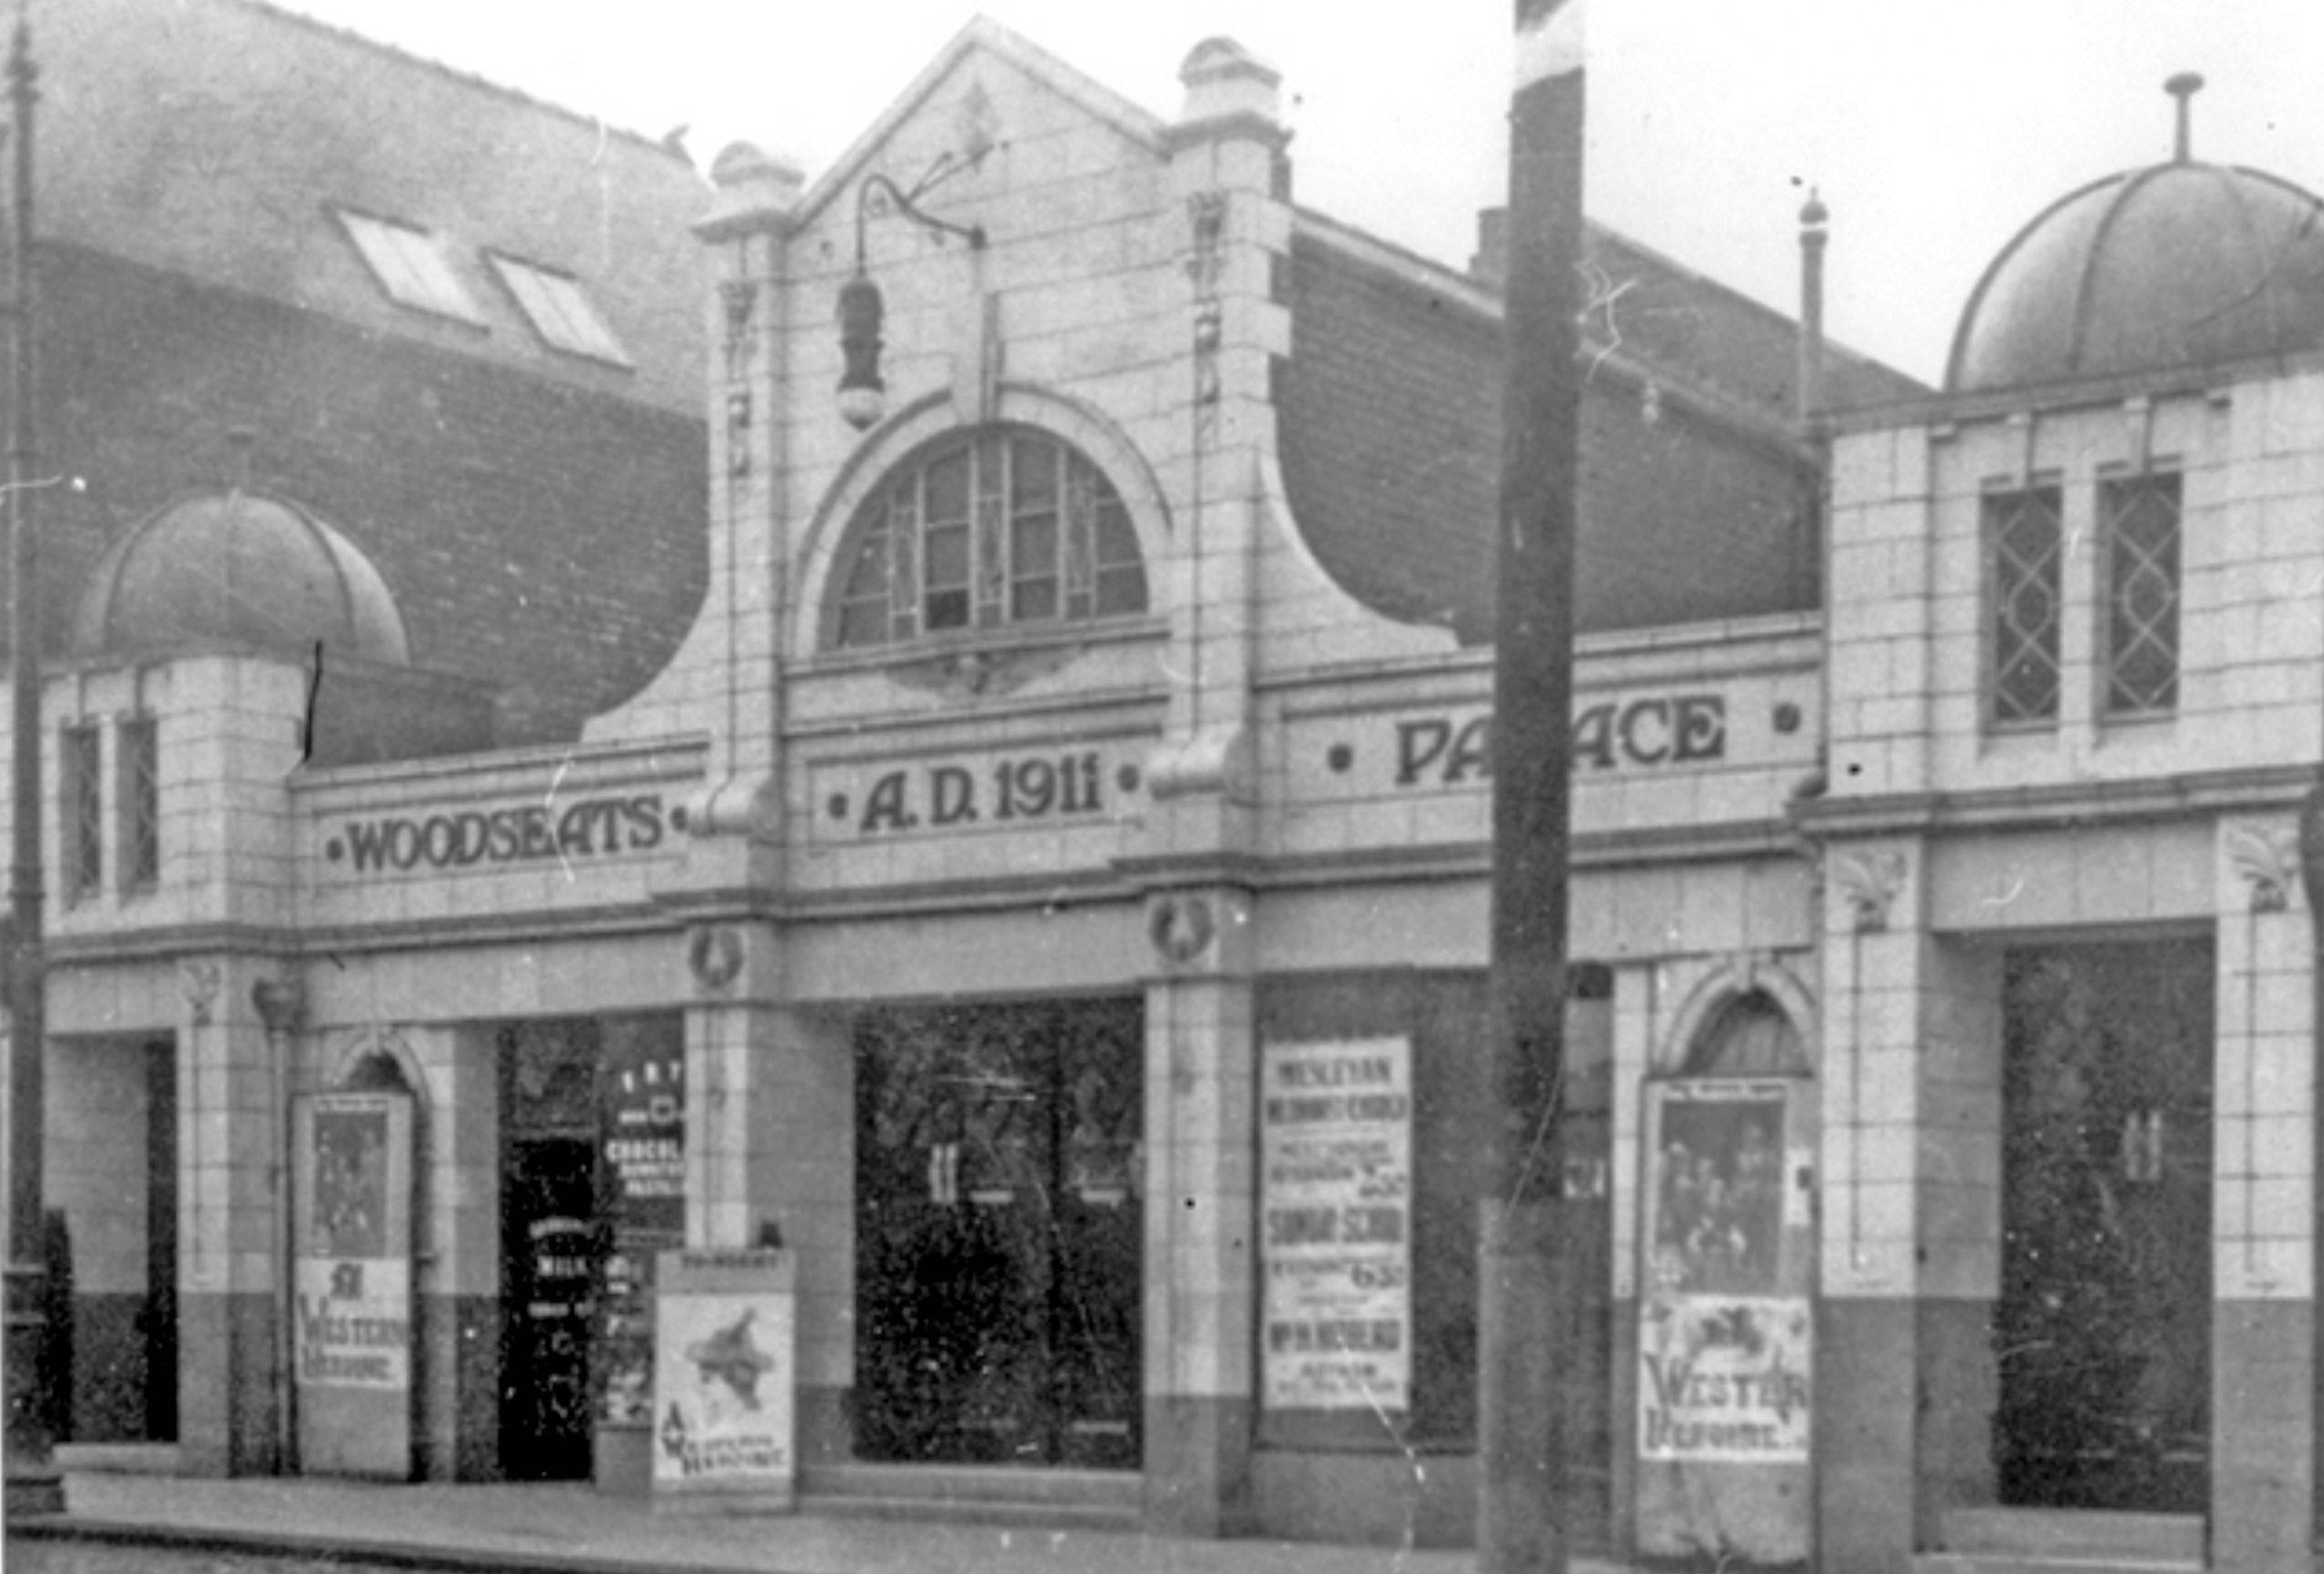 Woodseats Palace Cinema, Chesterfield Road, Woodseats